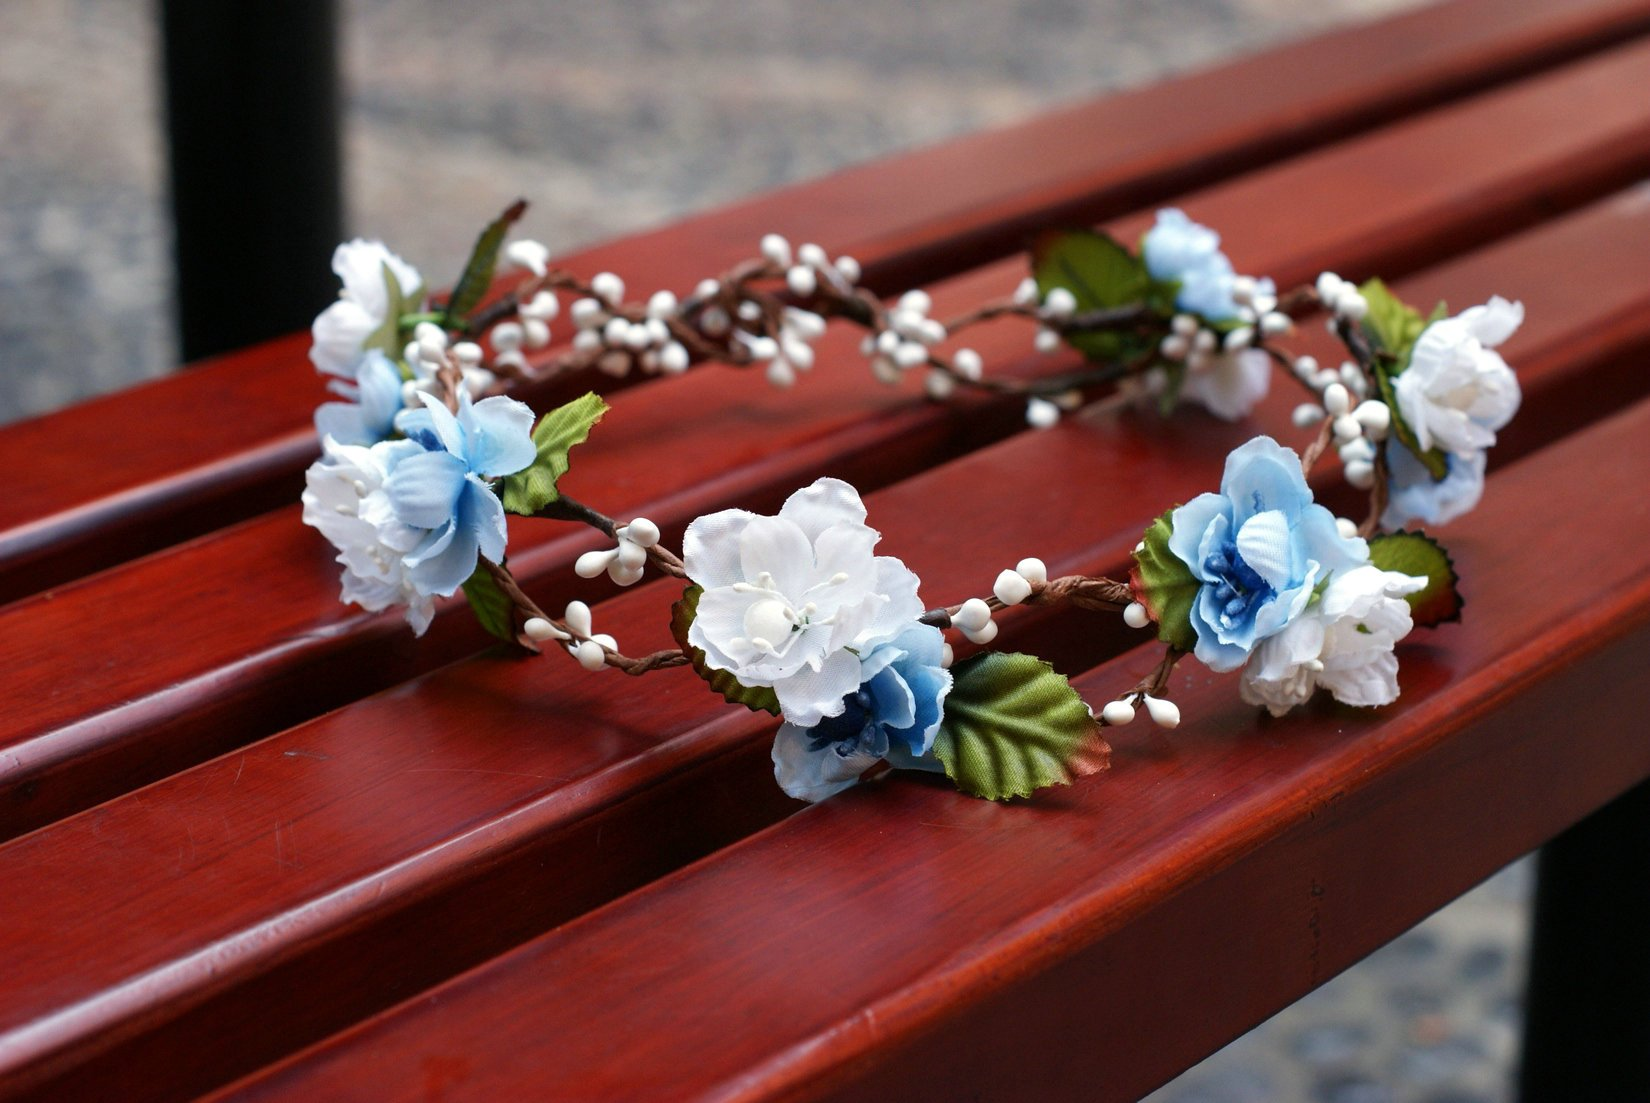 Amazon bridal flower crown floral crown wedding wreath boho amazon bridal flower crown floral crown wedding wreath boho garland whiteblue beauty izmirmasajfo